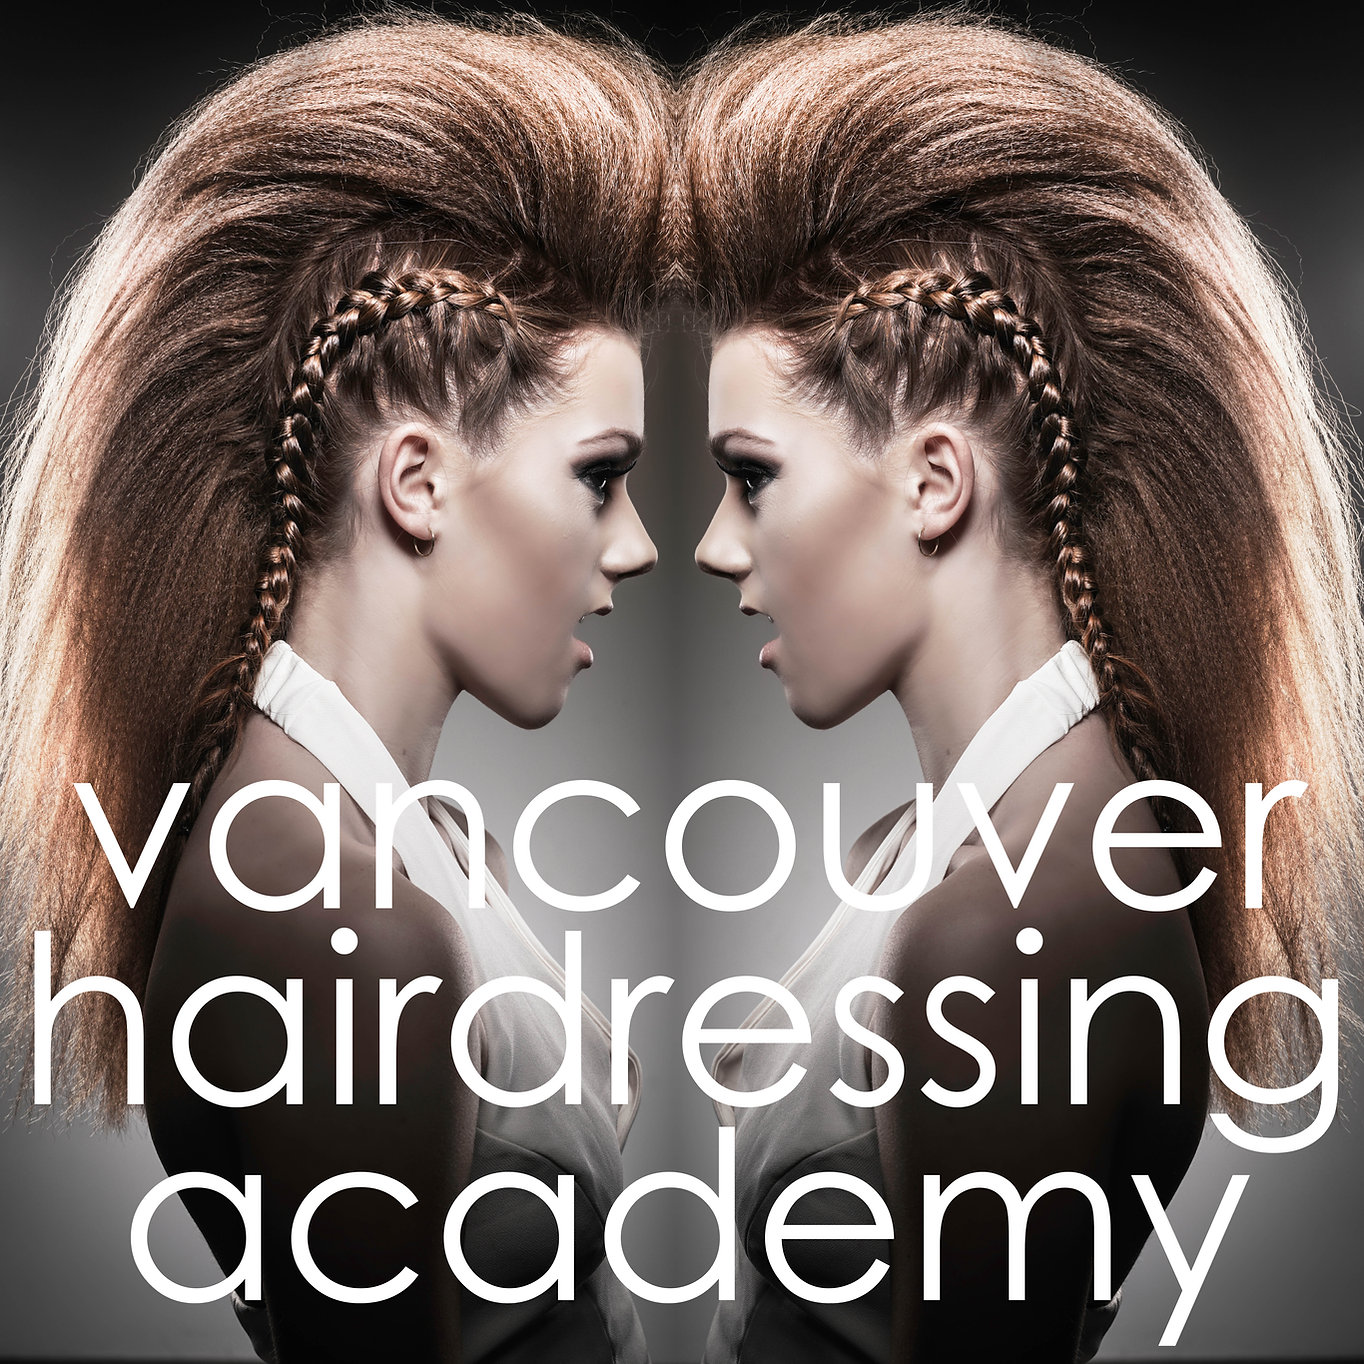 Best Hairdressing School in Vancouver